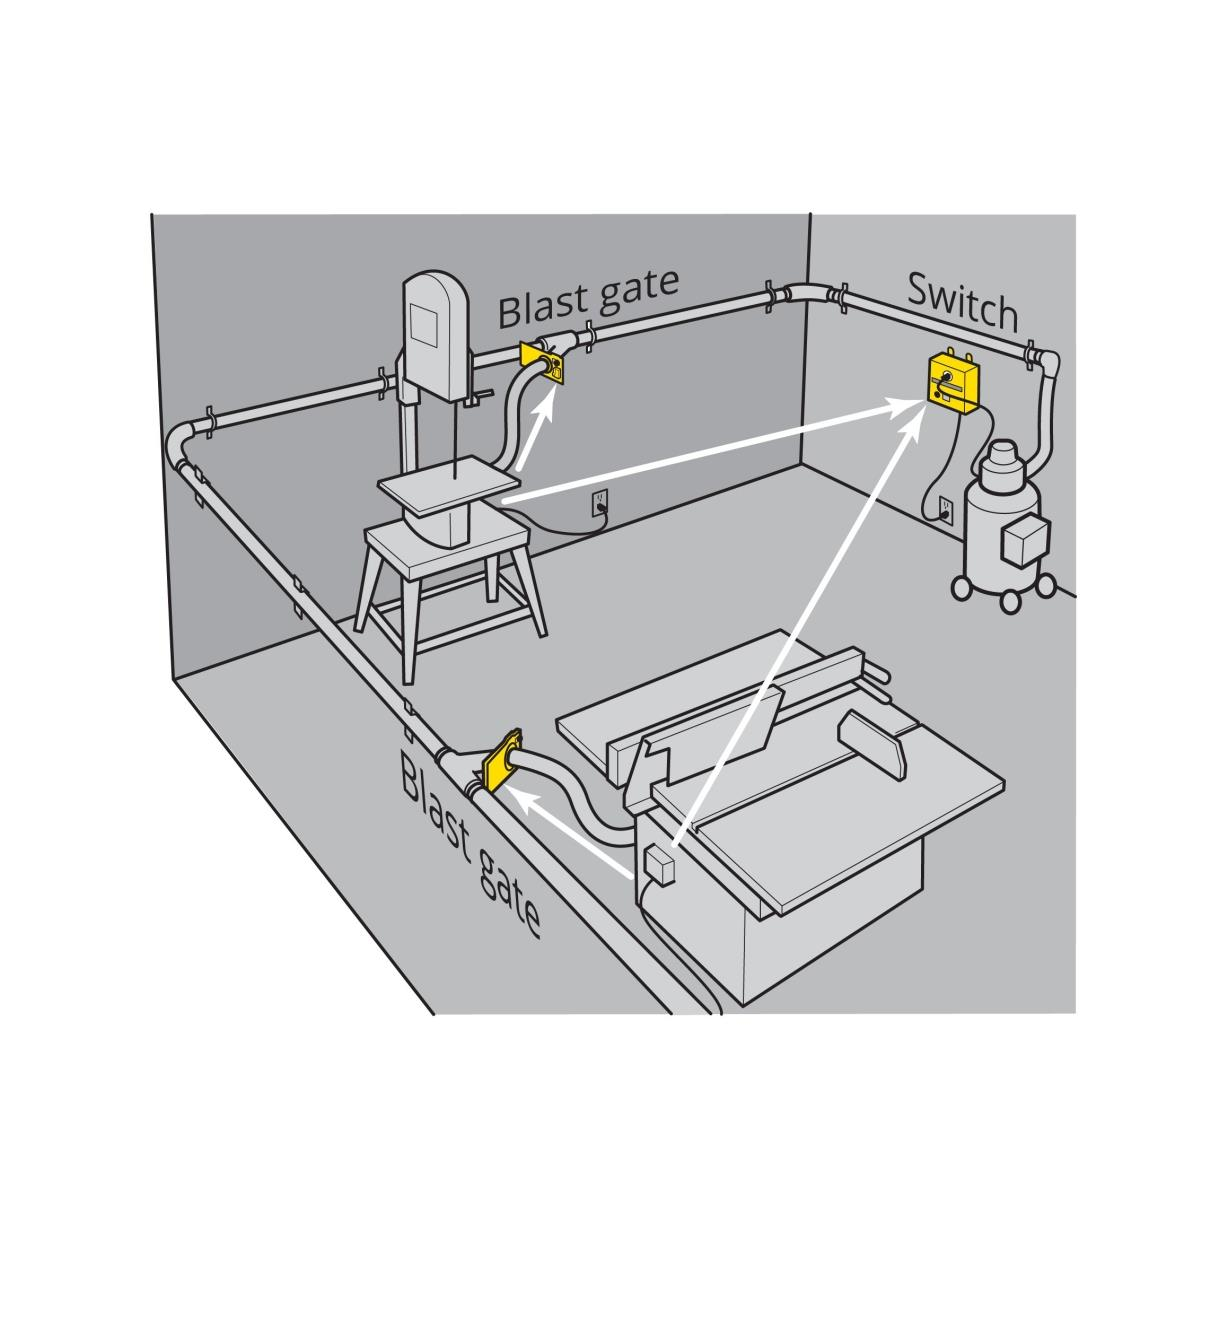 Illustration of an iVAC dust collection system installed in a shop